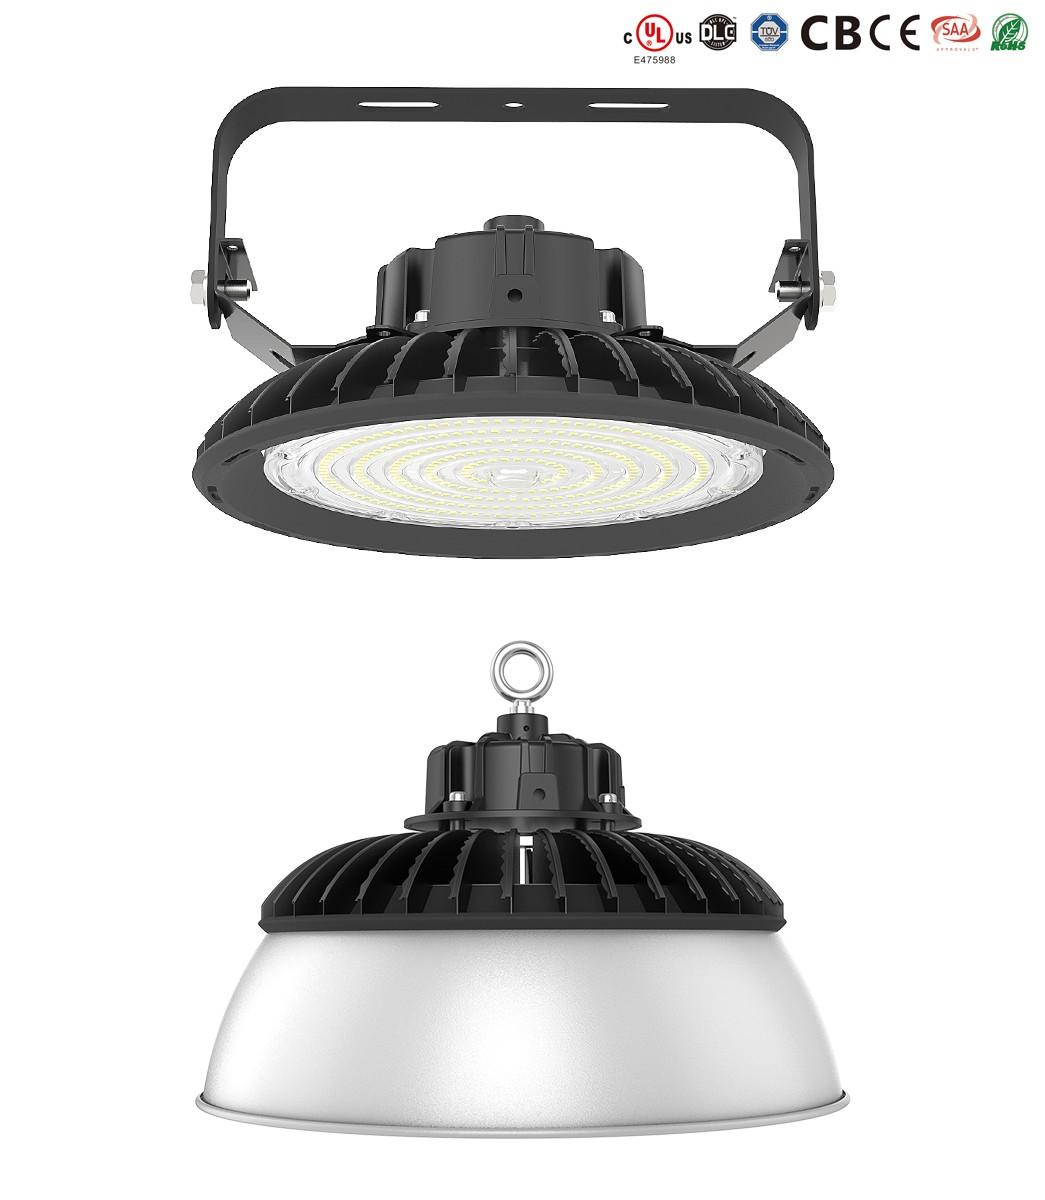 waterproof commercial high bay lighting fixtures soft factory for exhibition halls-1